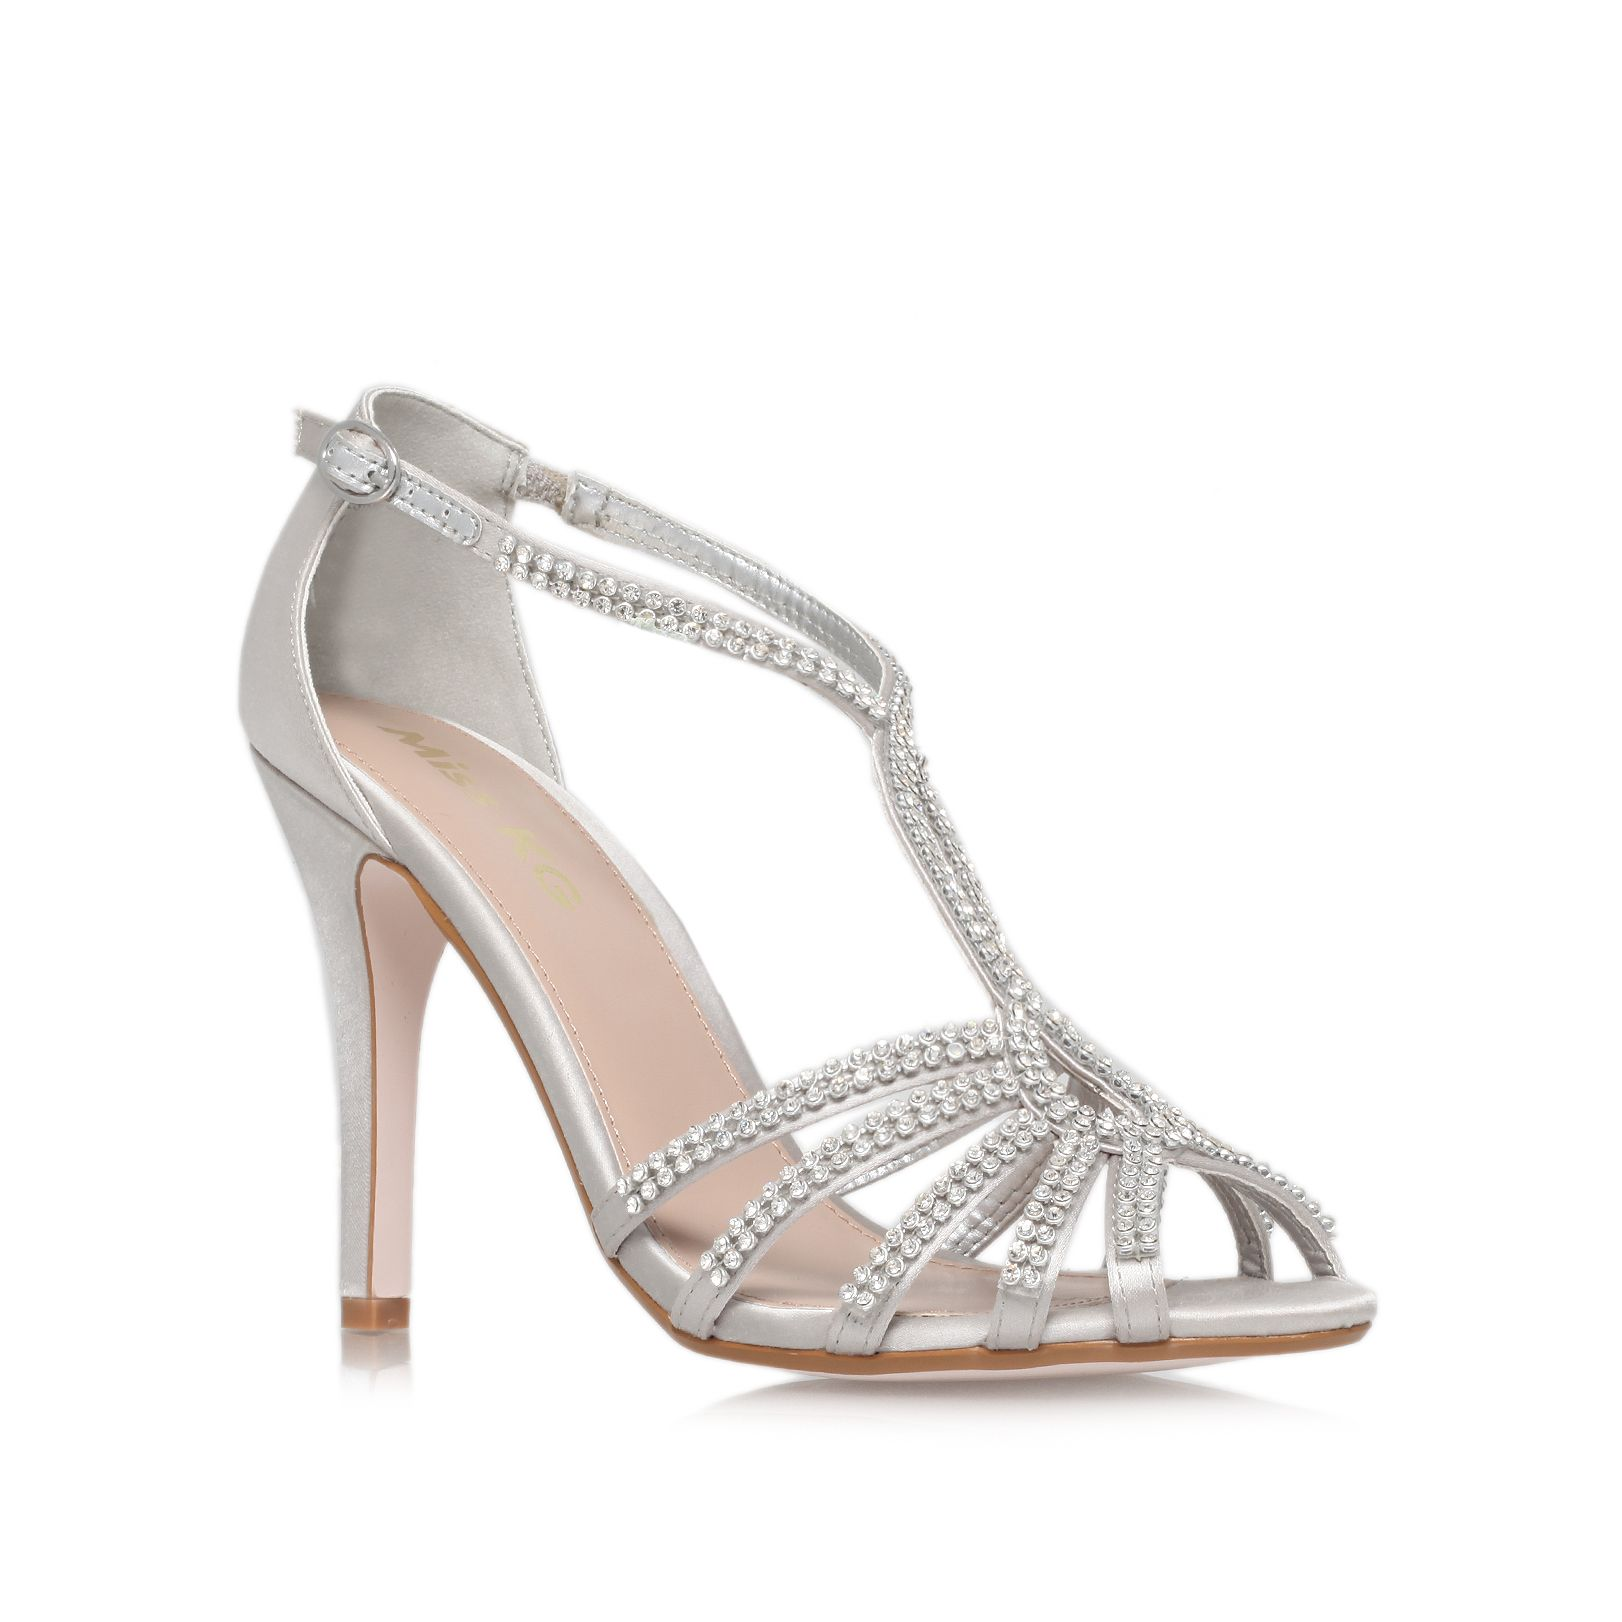 Pippa2 high heel occasion shoes